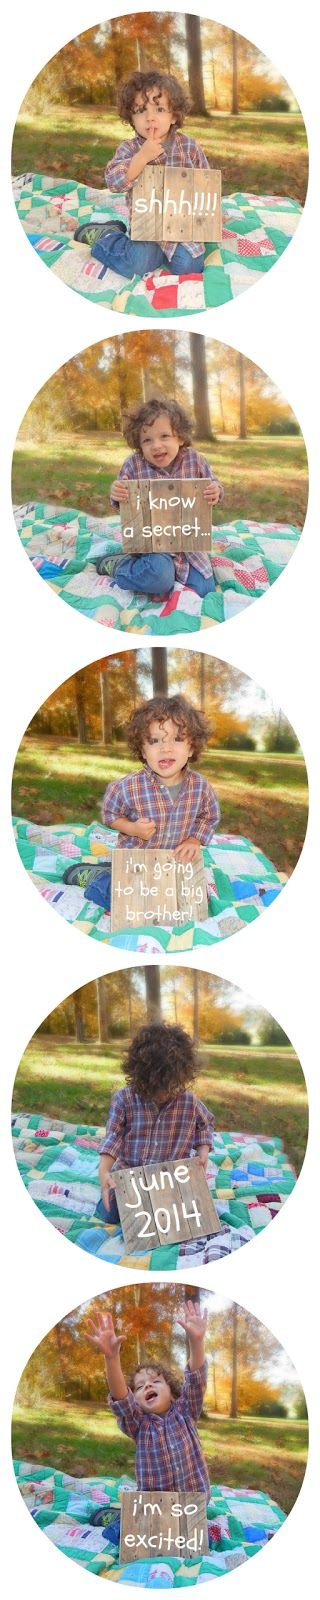 "Oh Boy, Cato!: ""I'm Going to be a Big Brother"" An Announcement"